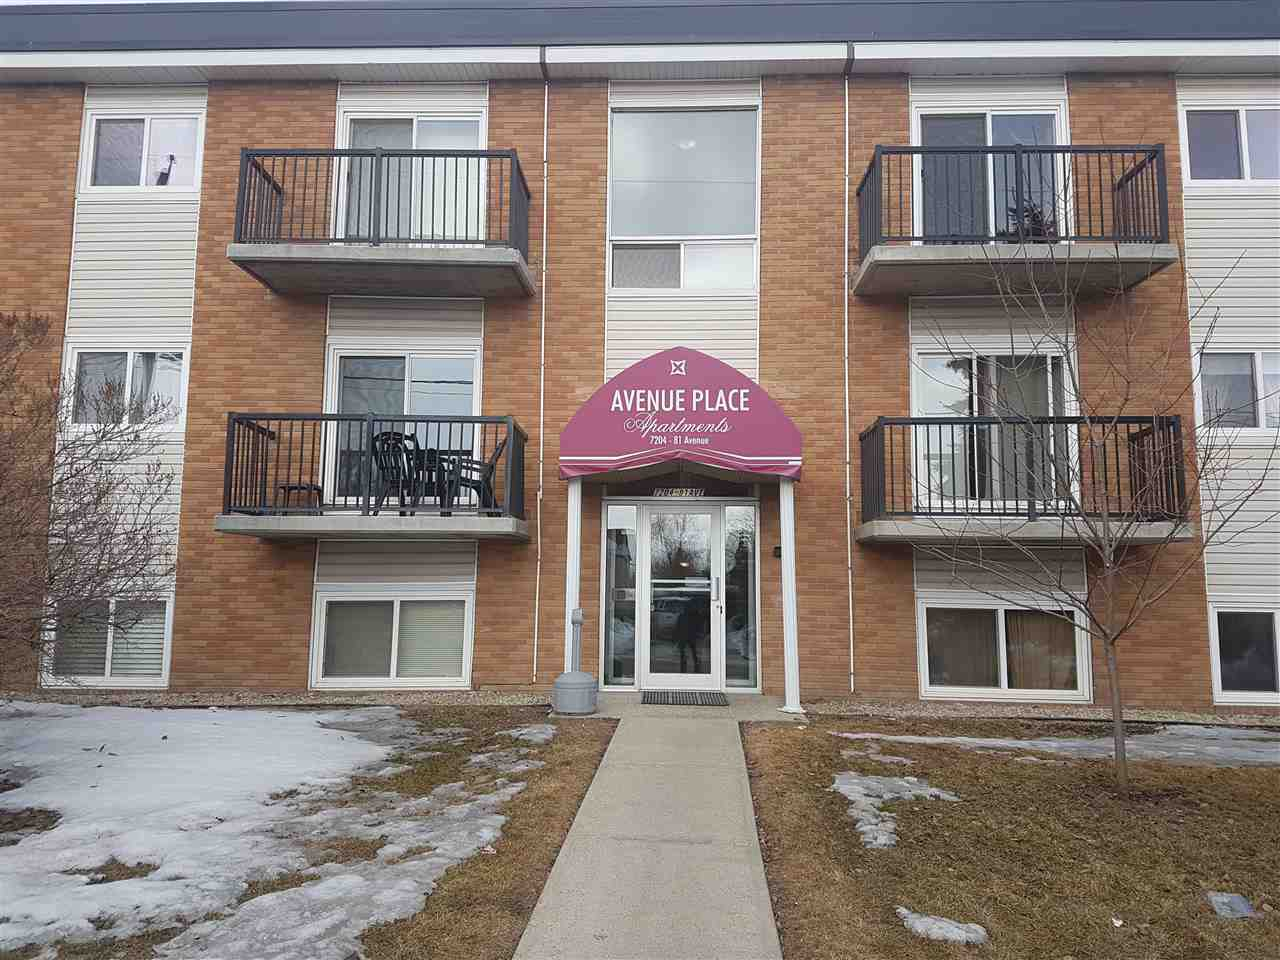 Excellent investment opportunity in King Edward Park! Fantastic location just minutes from downtown. This large 2 bedroom unit has the perfect setup for a first time home buyer or investor. Close to UofA and Whyte Ave and transit the location cant beat. Just needs some sweat equity to make it great again! Come take a look, at this price won't last long.